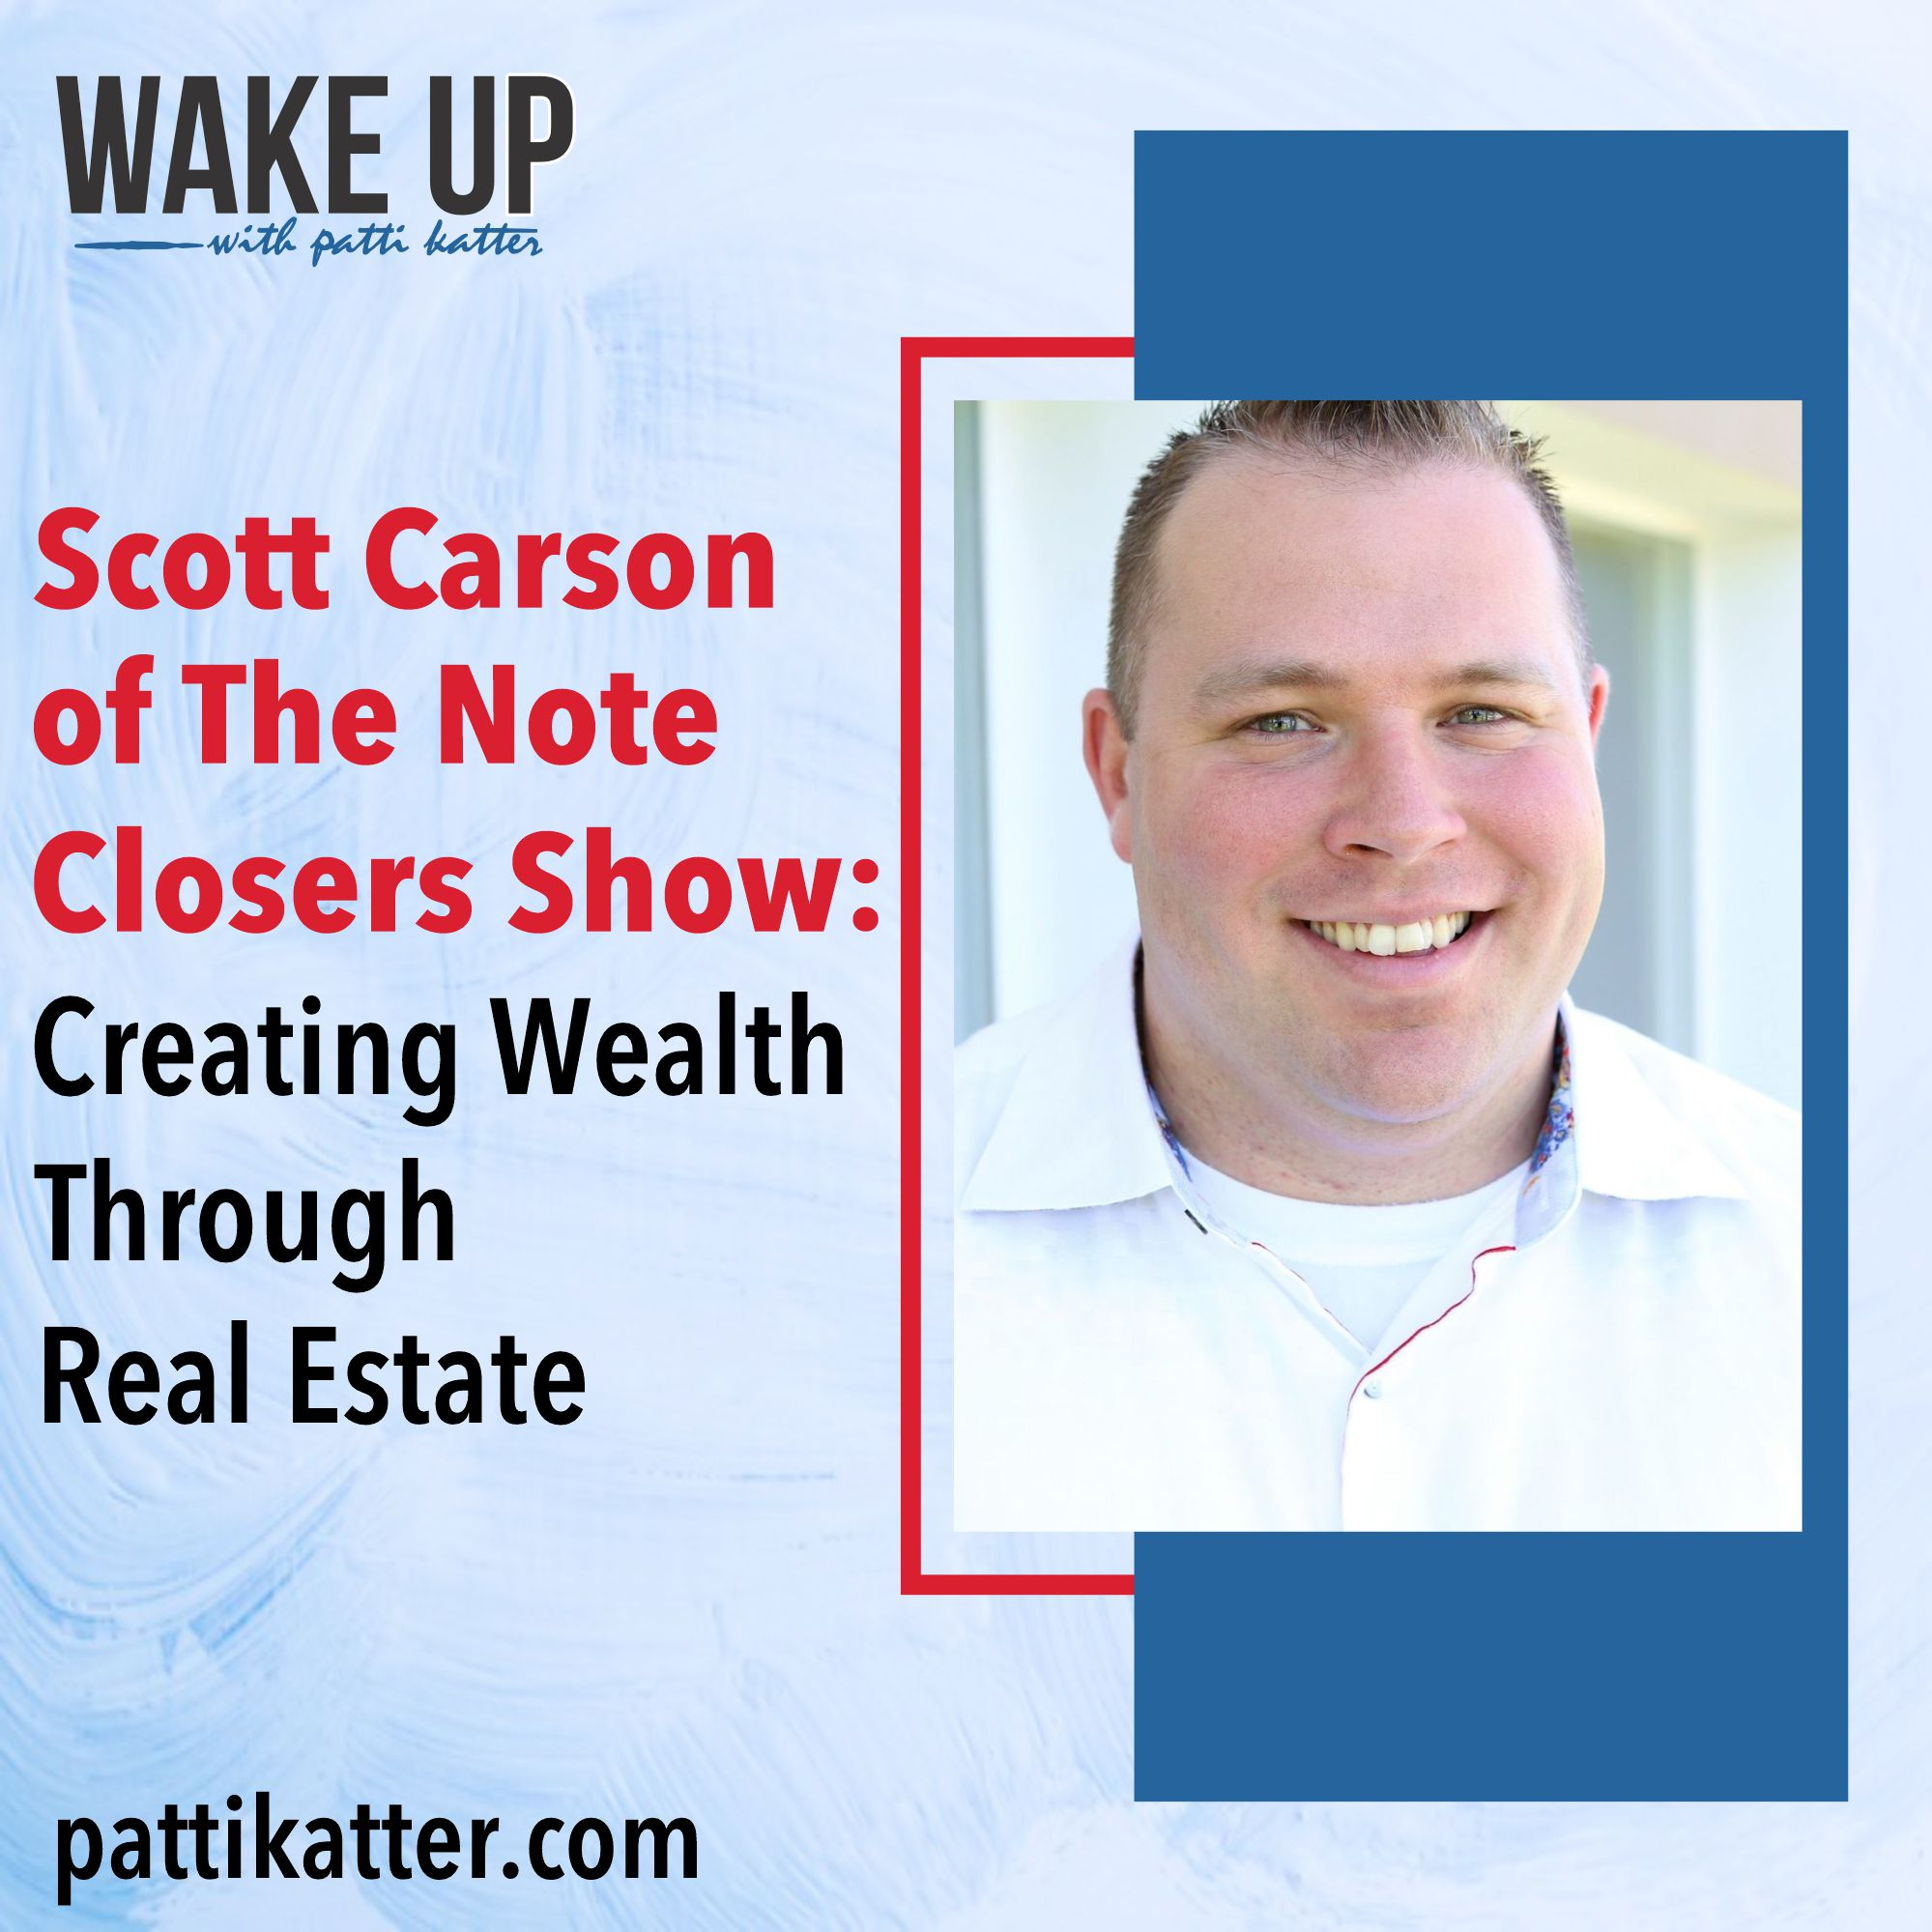 Scott Carson of The Note Closers Show: Creating Wealth Through Real Estate Notes